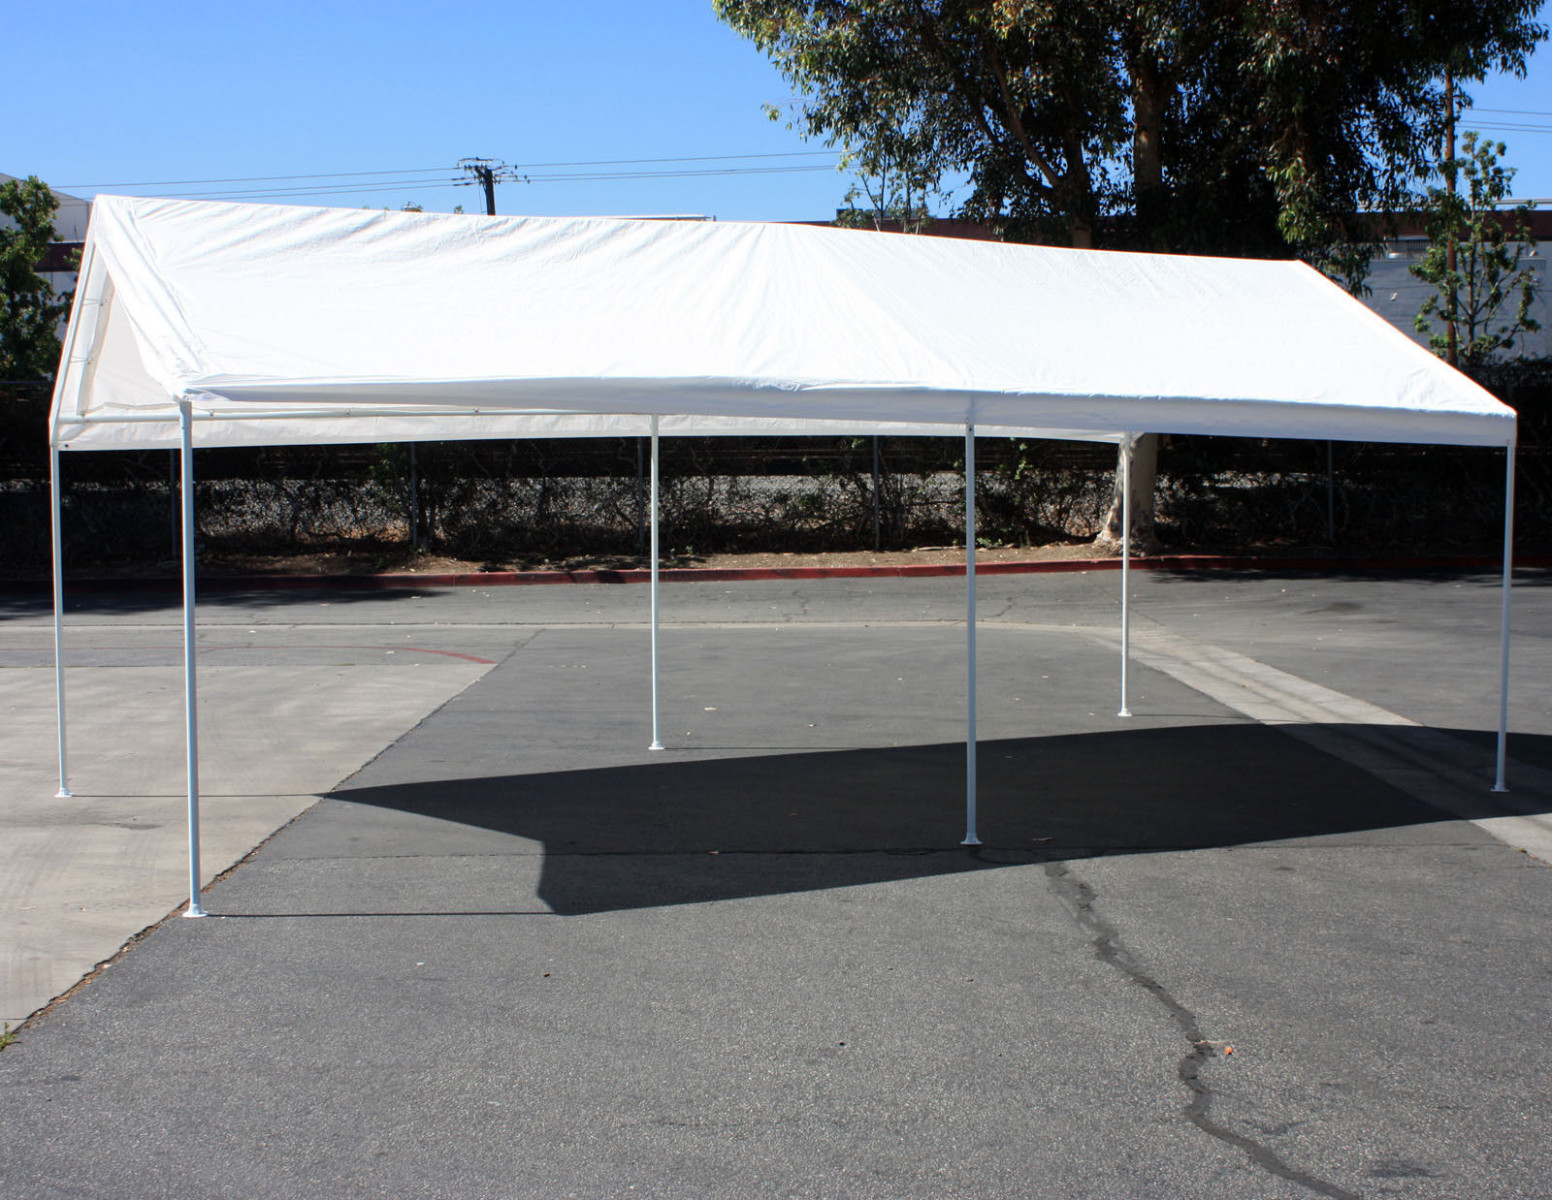 Add On Canopy Garage Side Wall Kit 8 8'x8' Tent Parking Carport Party Shelter Carport Canopy Kit